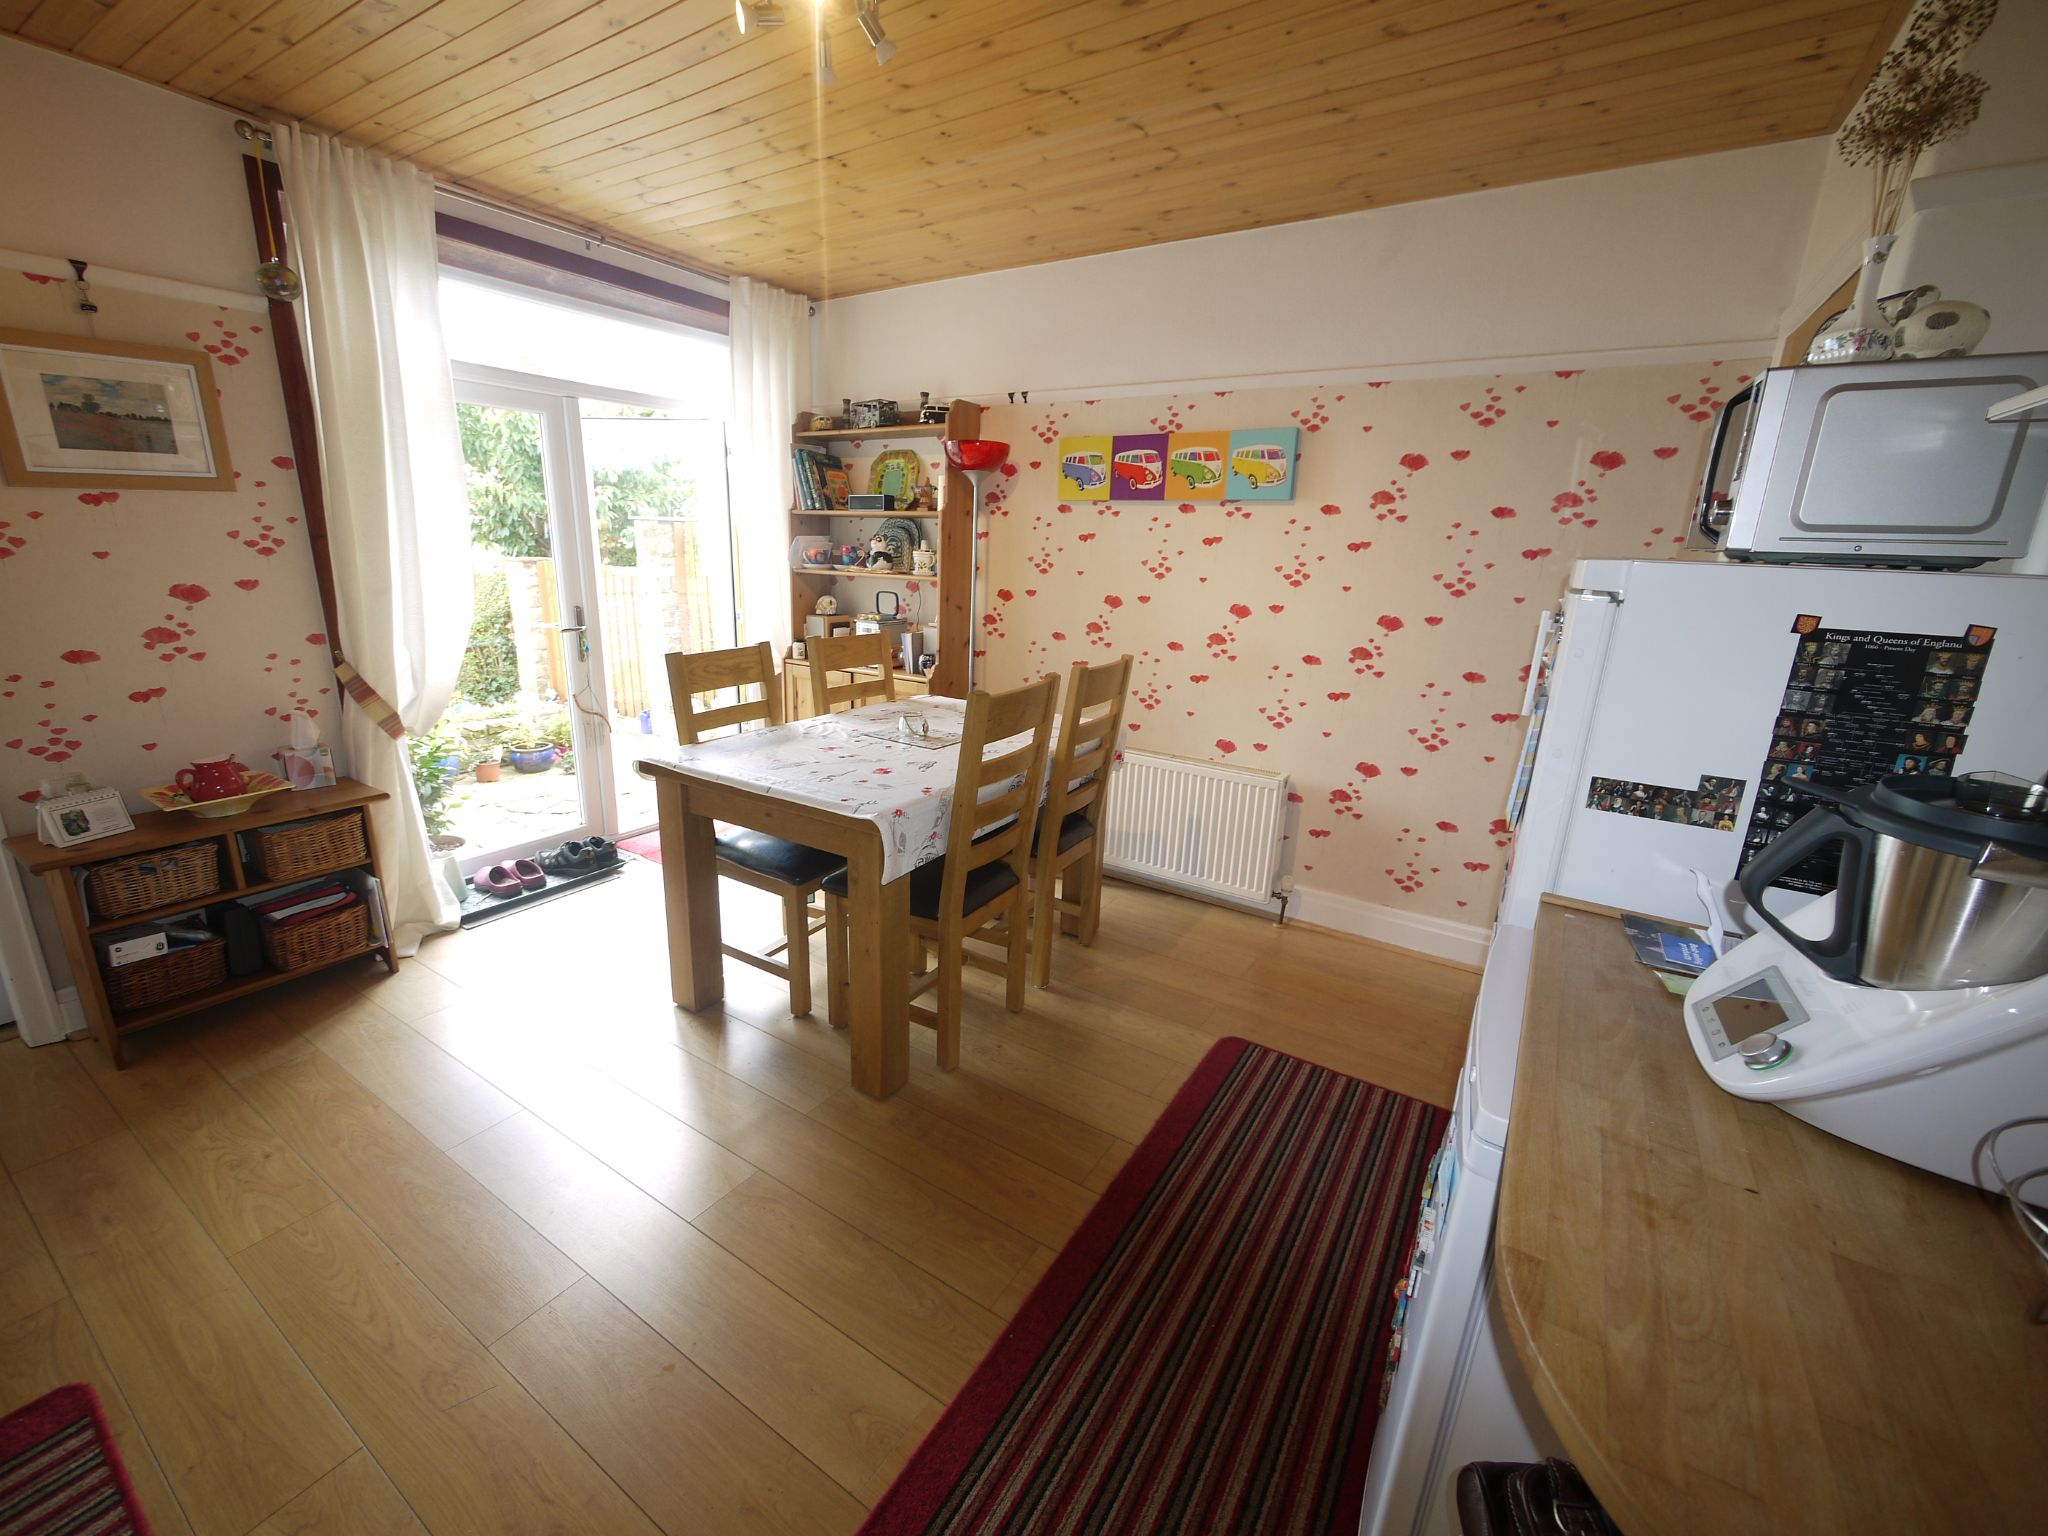 3 bedroom semi-detached house SSTC in Calderdale - Photograph 8.